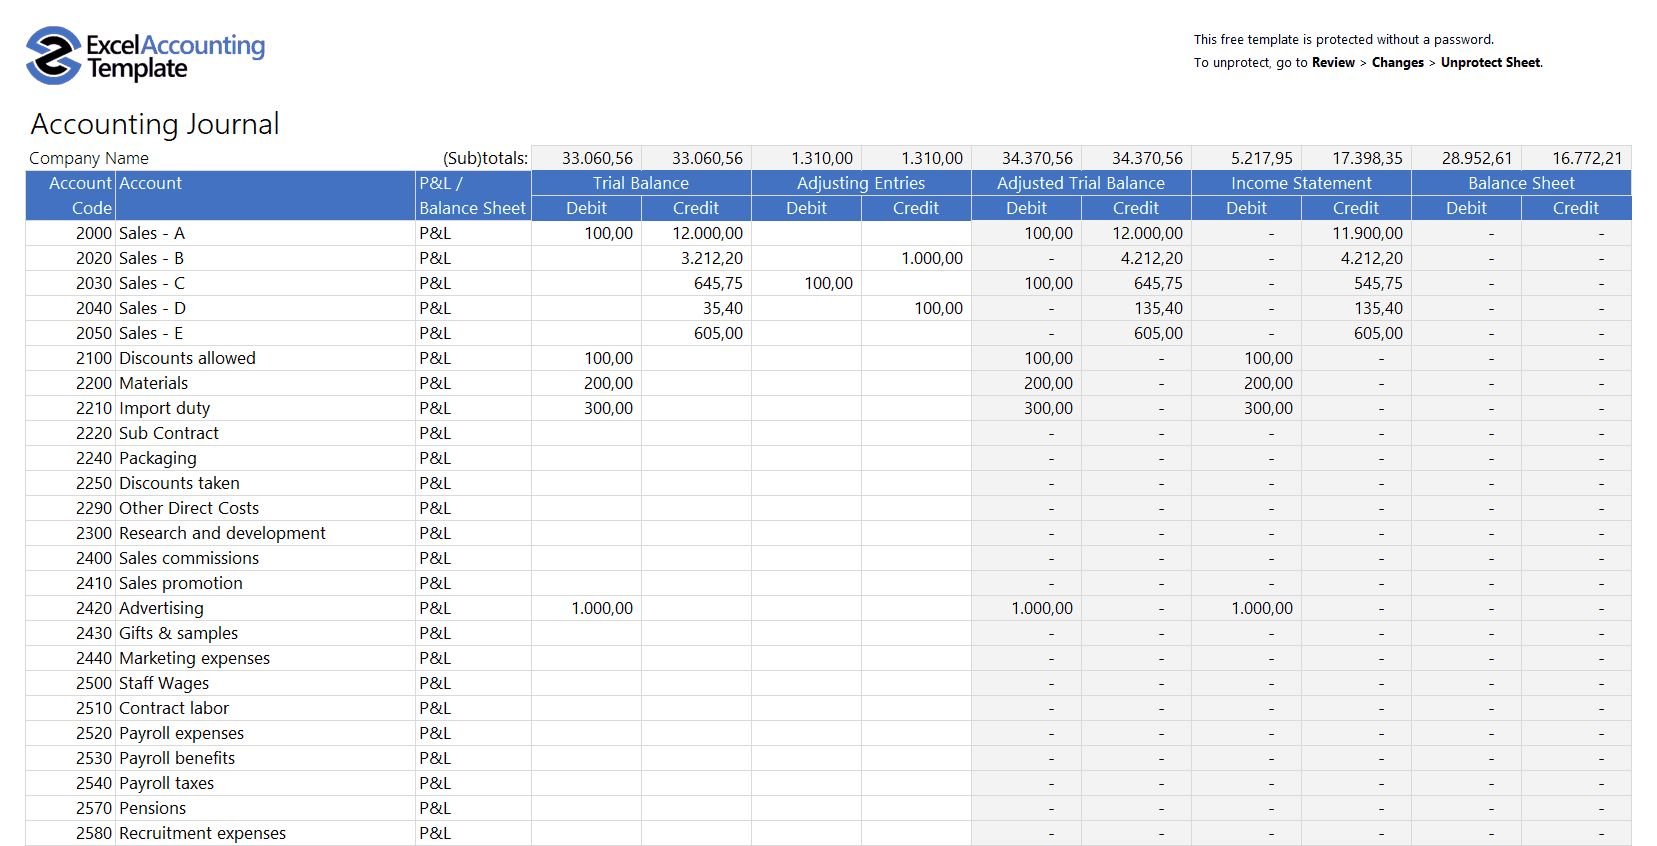 The Appealing Free Accounting Templates In Excel Download For Your Business Regarding Finan Spreadsheet Template Balance Sheet Template Bookkeeping Templates Free excel accounting templates download